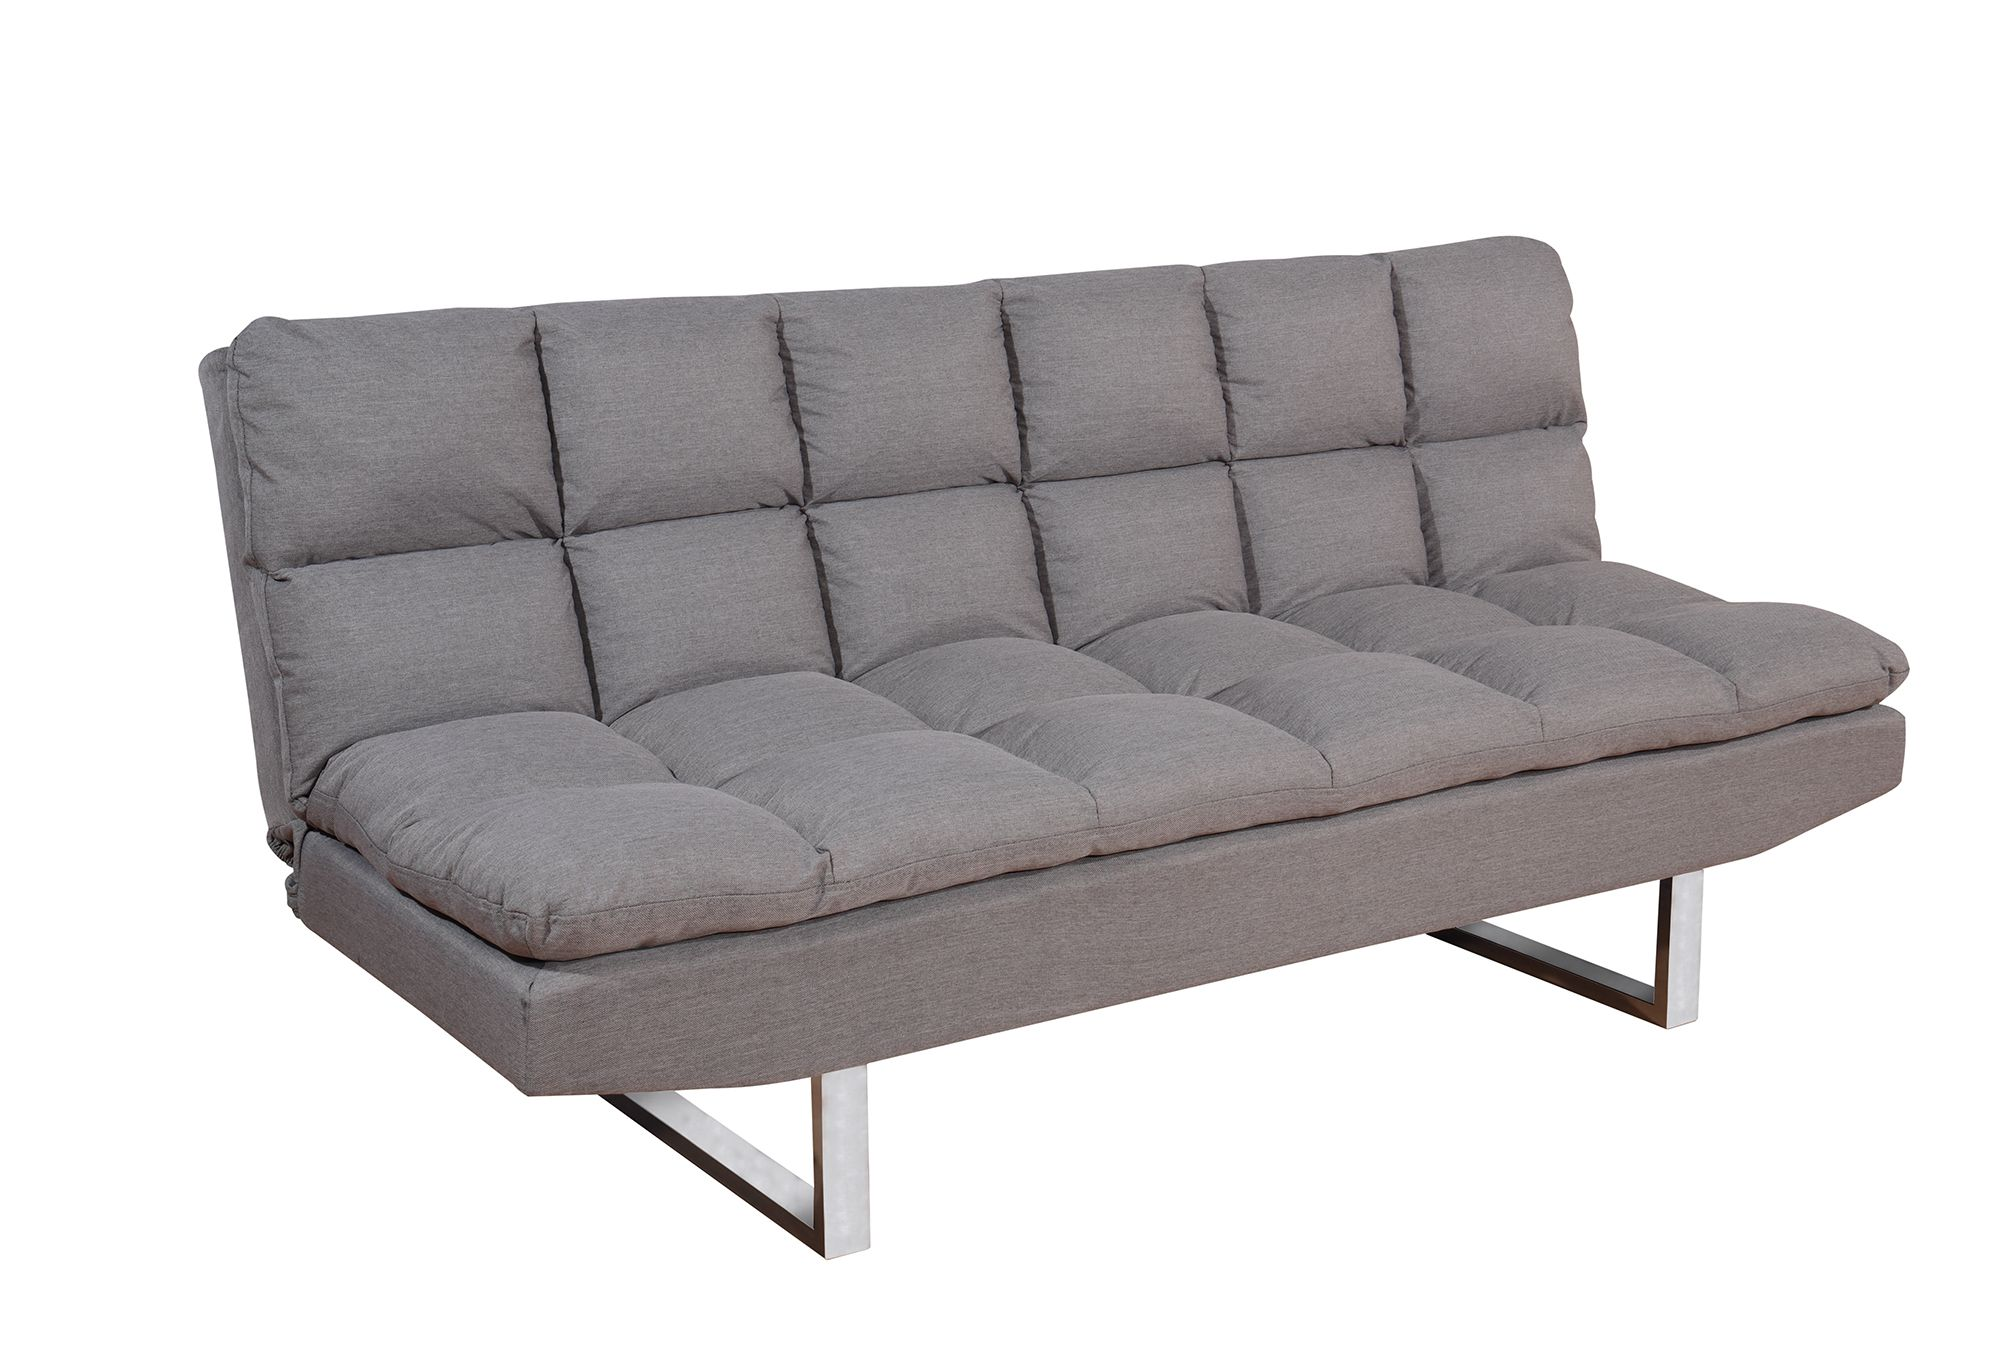 Kyoto boston 110cm sofa bed sofa beds meubles for Meuble japonais futon